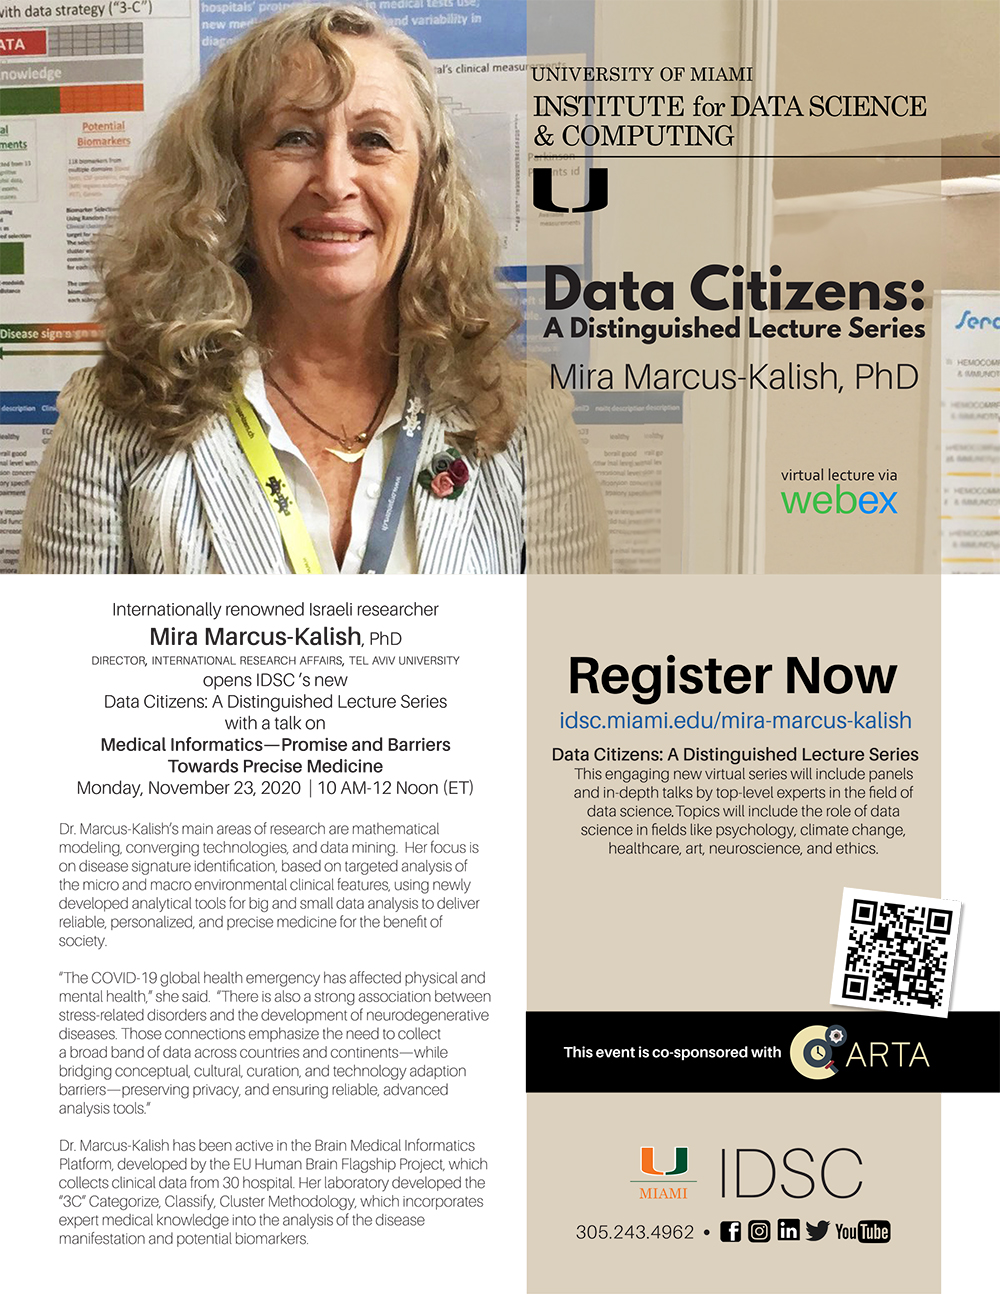 University of Miami Institute for Data Science and Computing, Data Citizens: A Distinguished Lecture series, Dr. Mira Marcus-Kalish, Monday, November 23, 2020 FLYER